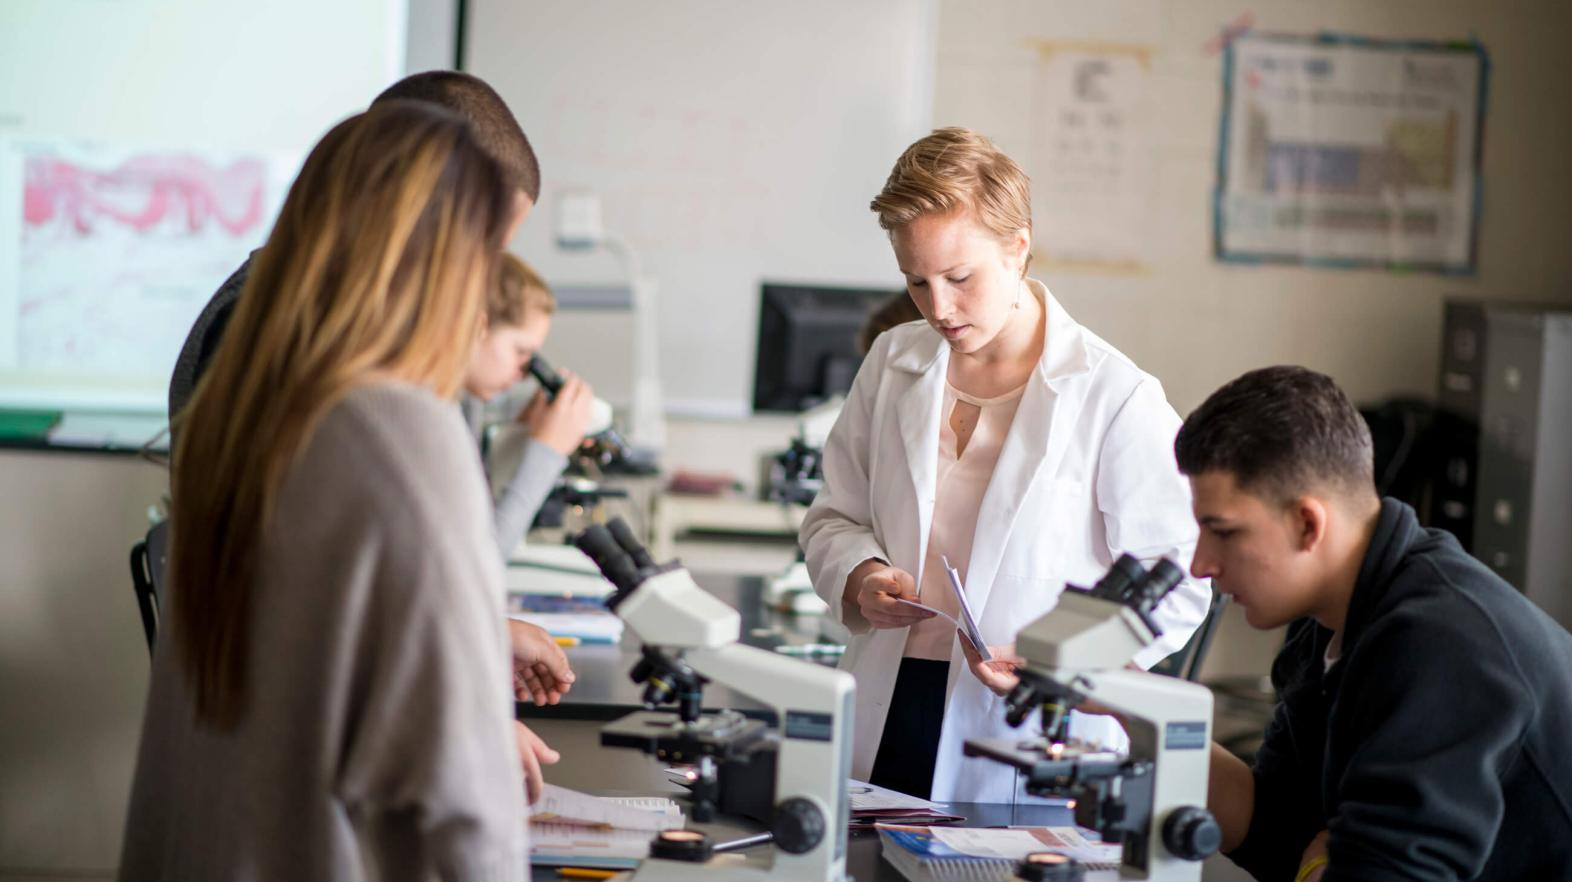 A professor works with her students and microscopes.